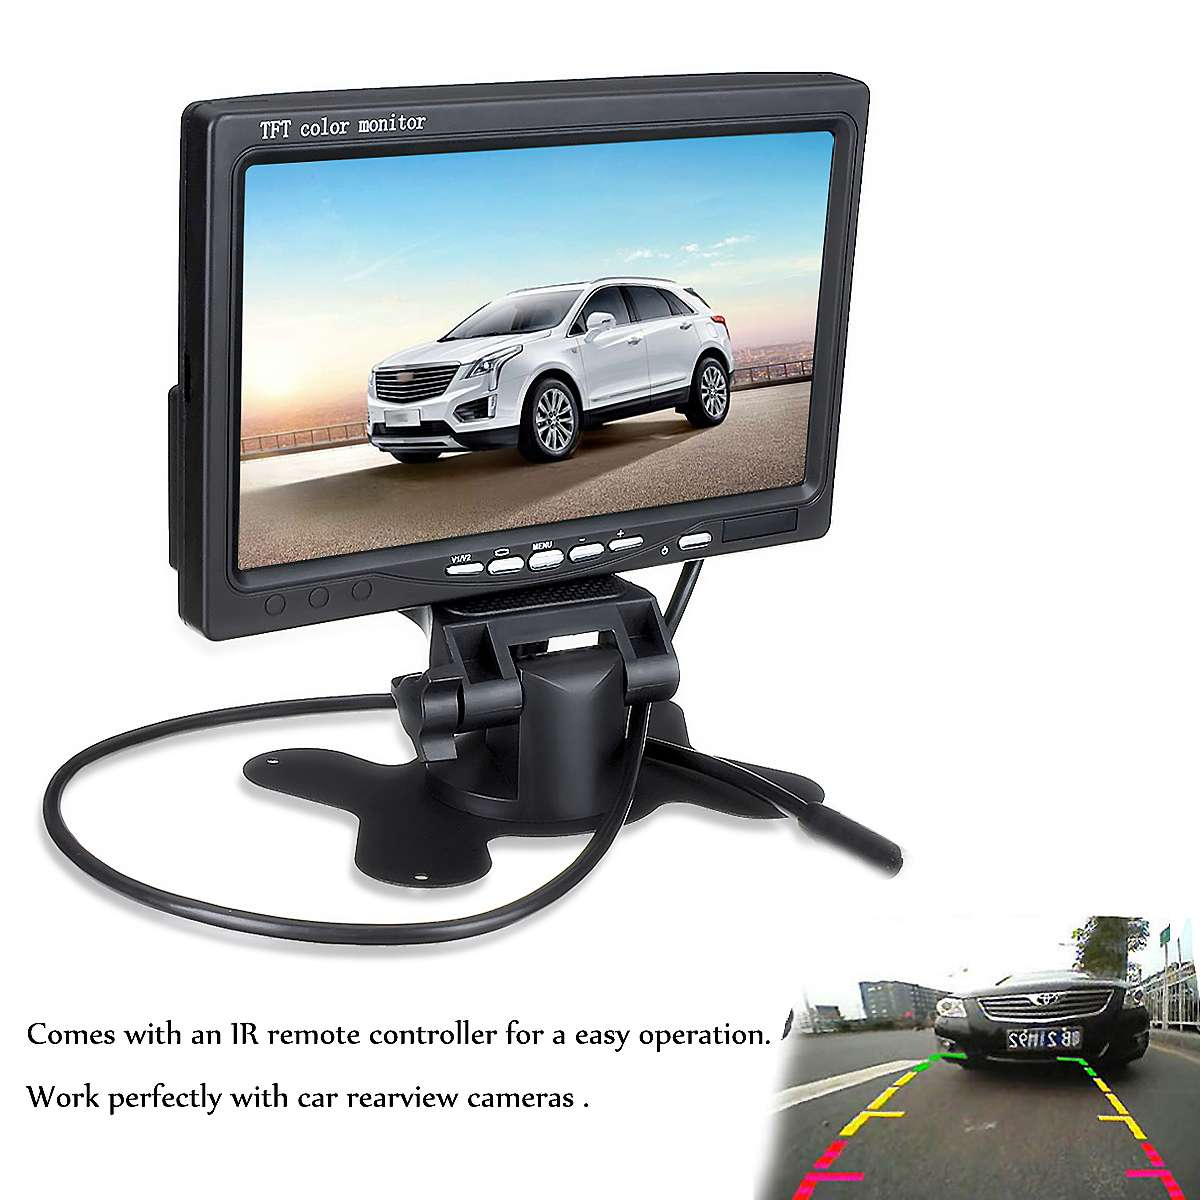 7 Inch 12V TFT LCD Screen Car Monitor Rearview Screen For CCTV Reversing Rear View Backup Camera Remote Control